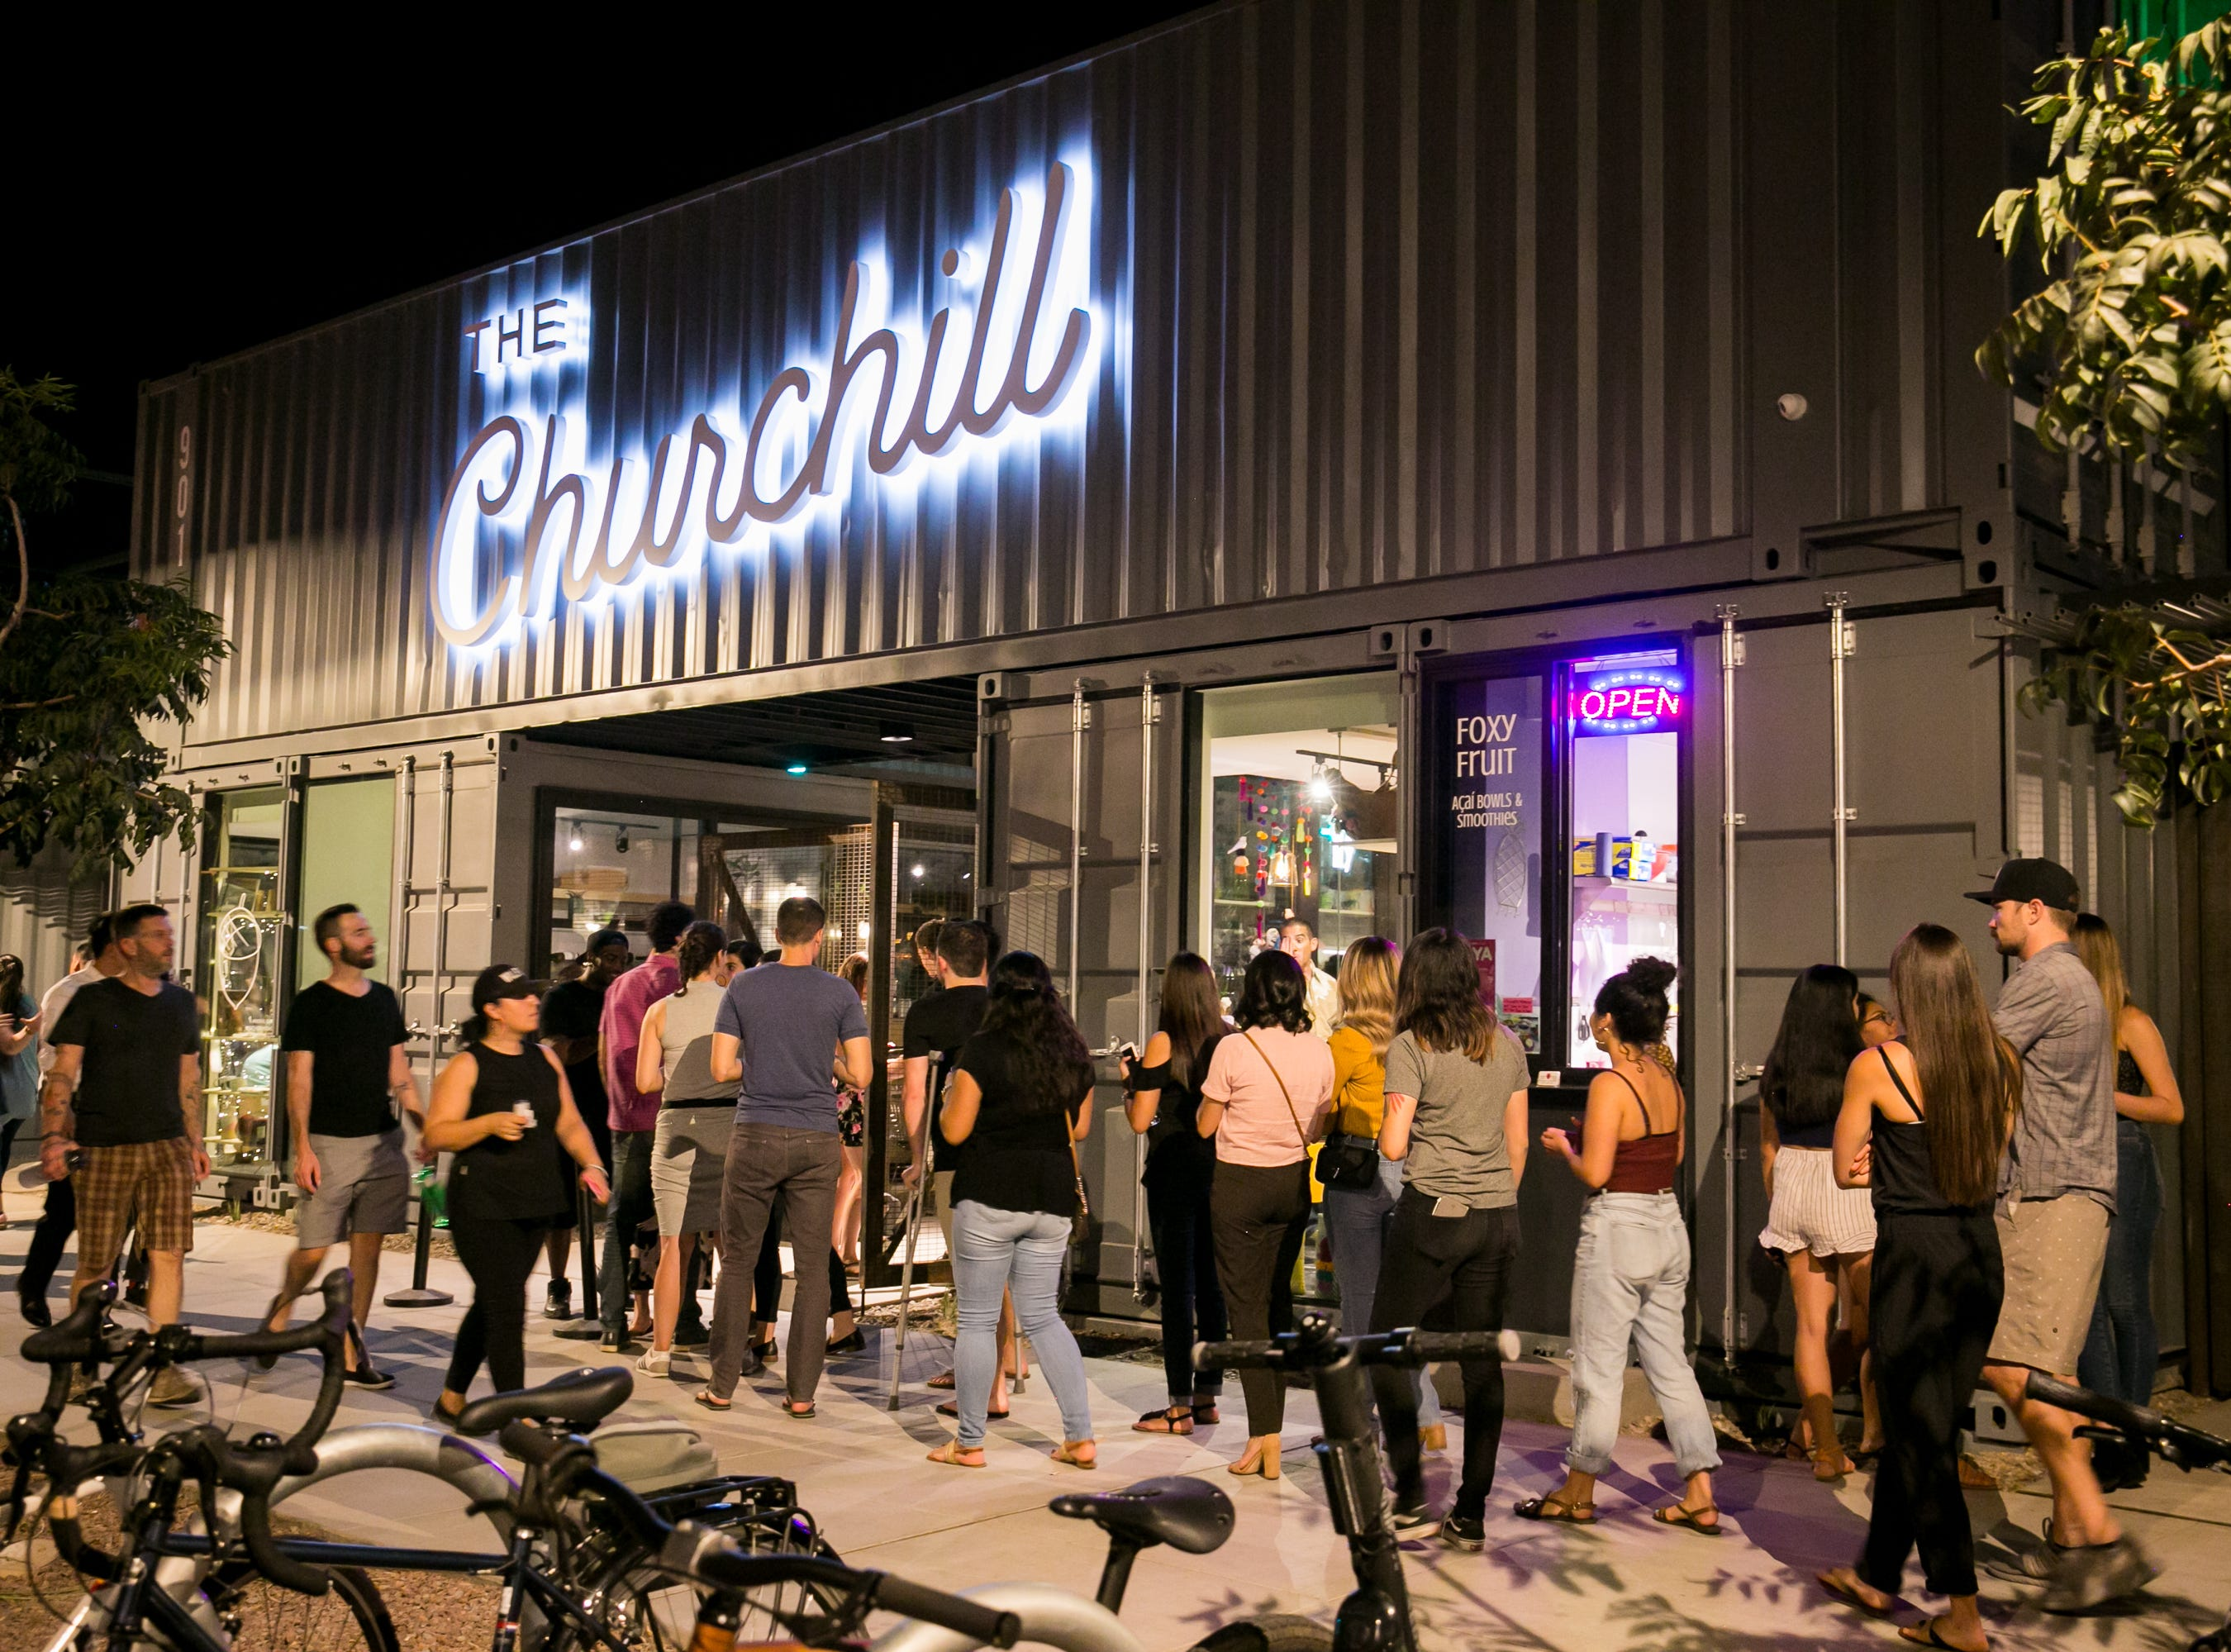 The Churchill is a great addition to Roosevelt Row.